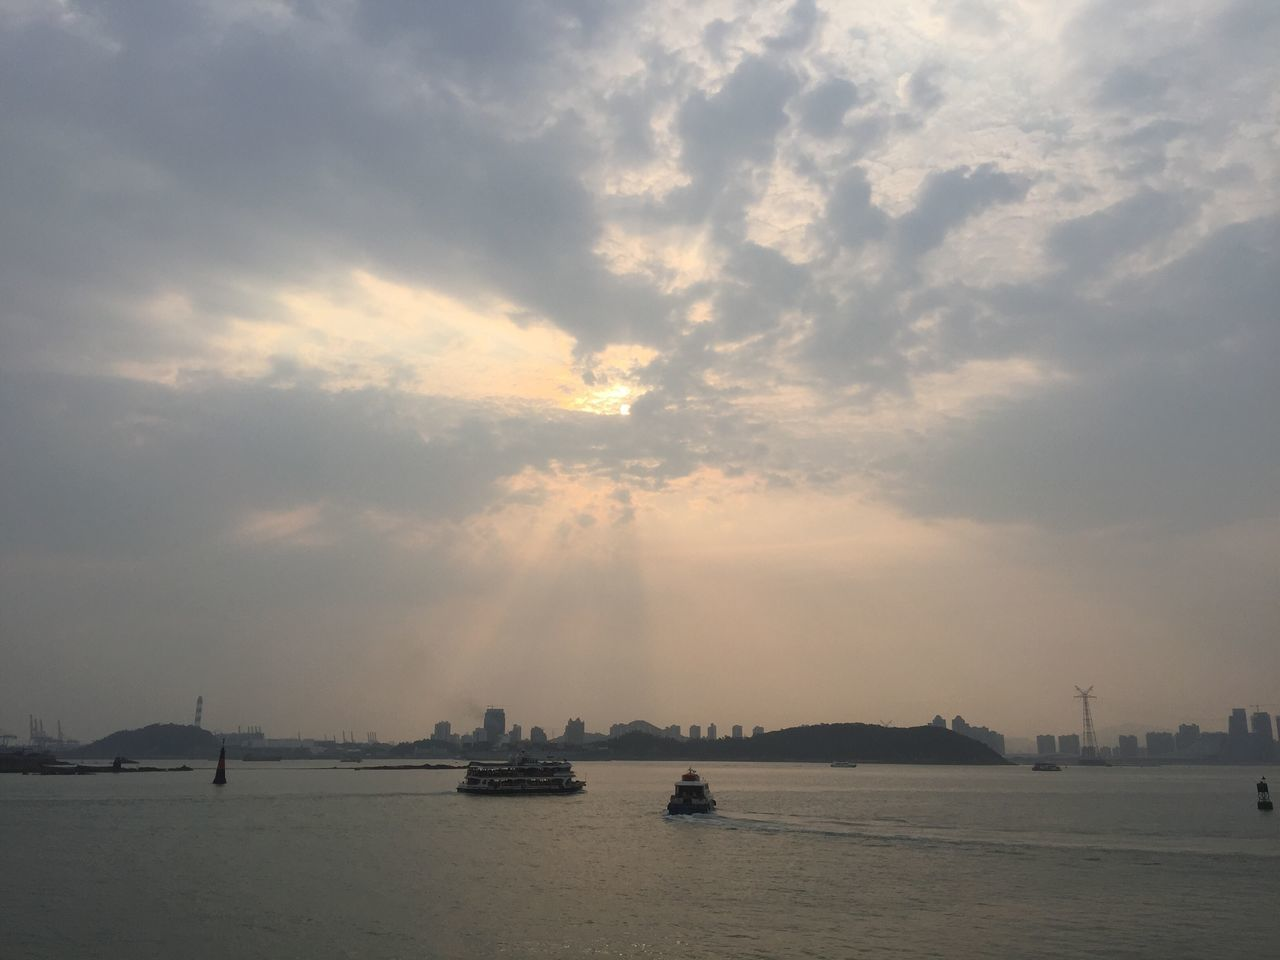 sky, water, cloud - sky, nautical vessel, sea, waterfront, city, sunset, skyscraper, nature, no people, cityscape, architecture, outdoors, building exterior, scenics, beauty in nature, built structure, storm cloud, sailing, urban skyline, day